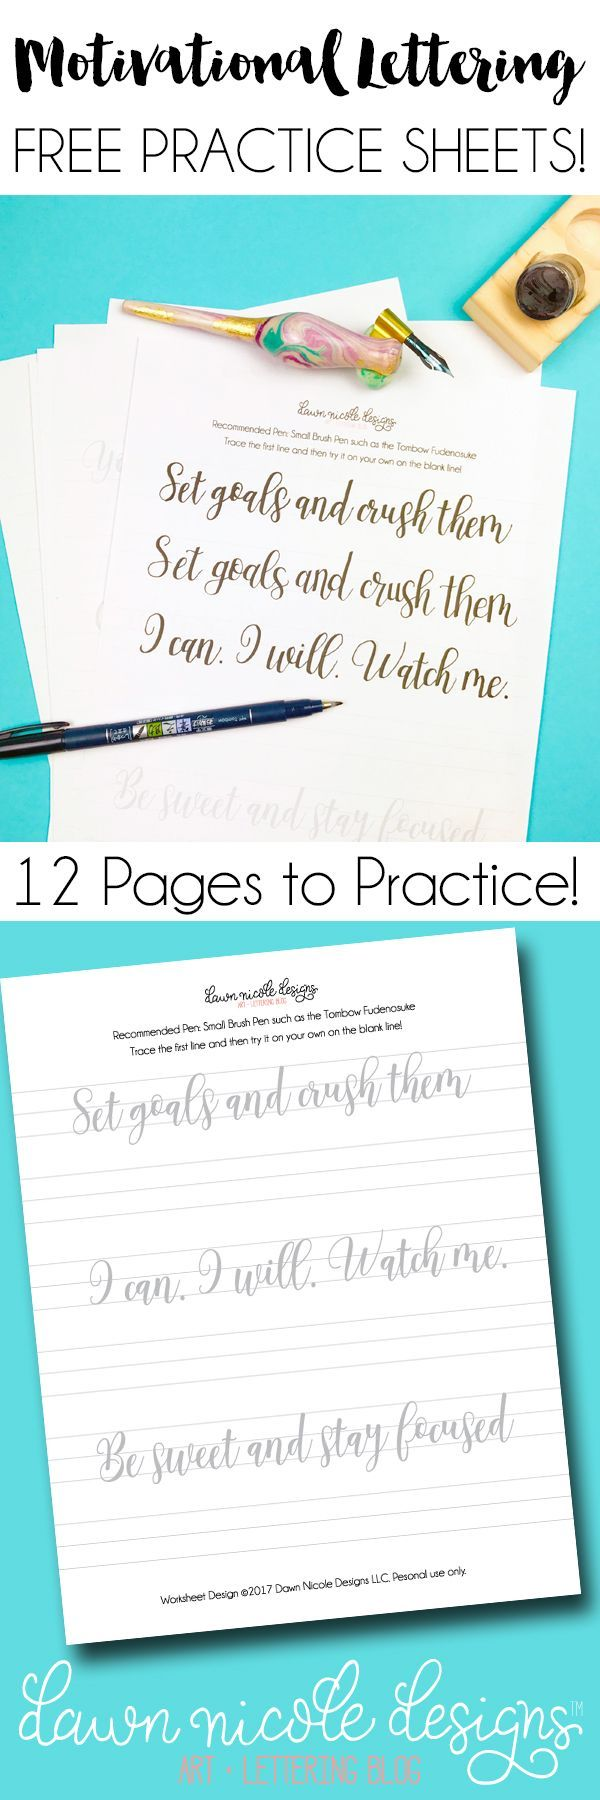 Motivational Free Calligraphy Practice Sheets. Download the free 12 page PDF and get your lettering practice on! Includes pen recommendations.